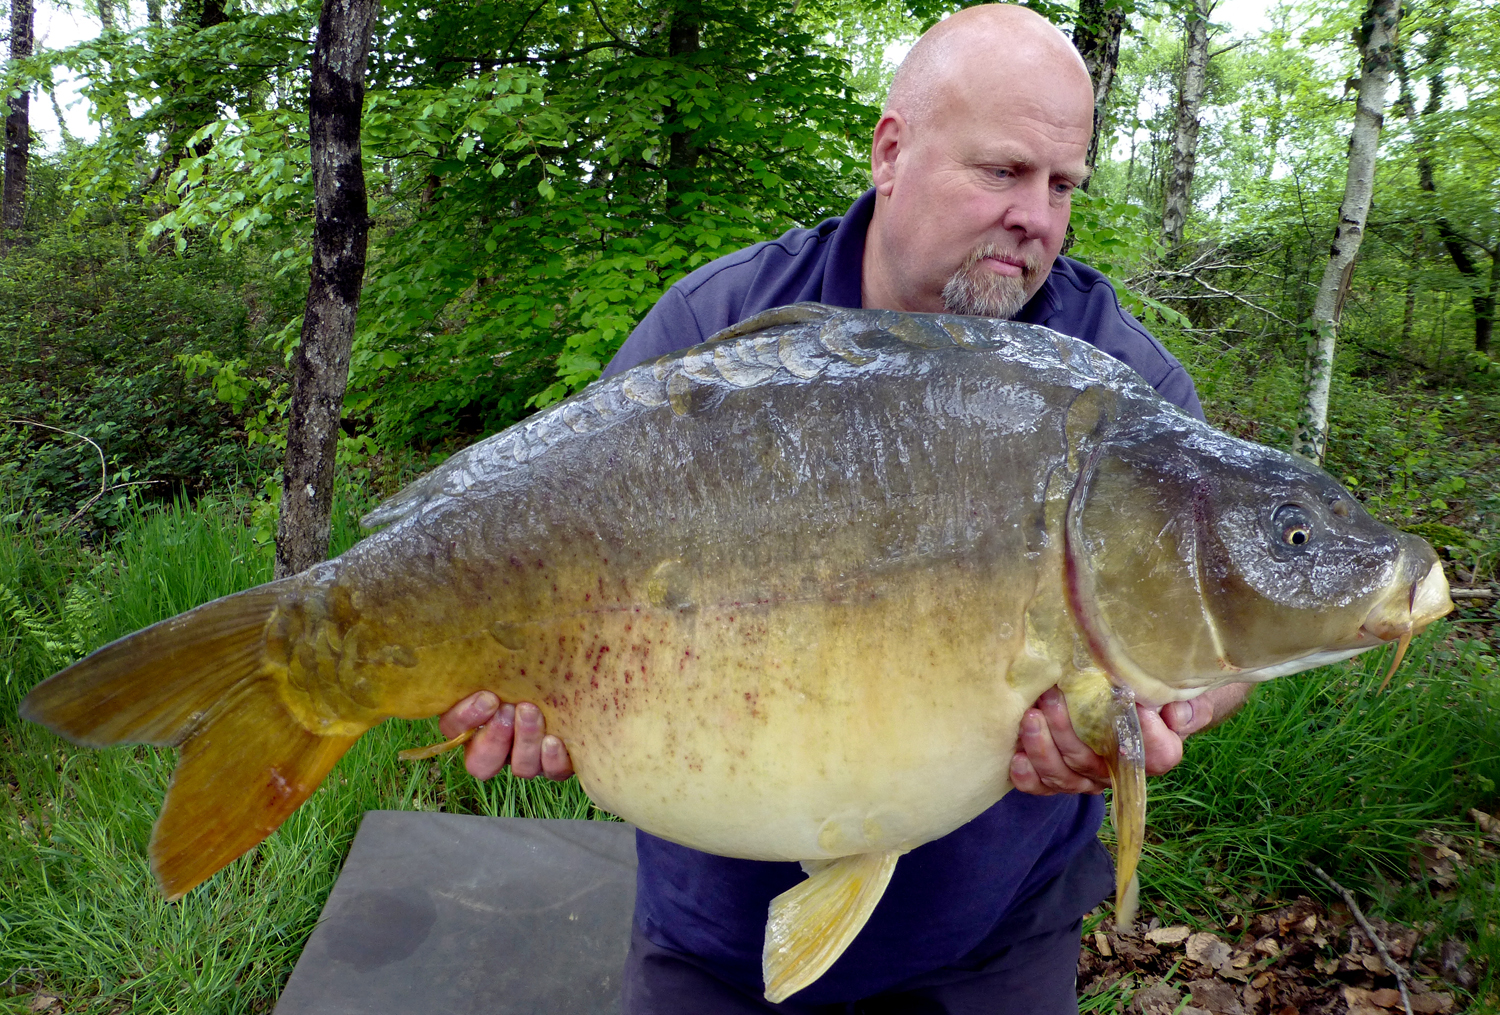 http://www.starbaits.com/fichiers/images/team/gallery/SUDRE_Bruno/1 (14).jpg